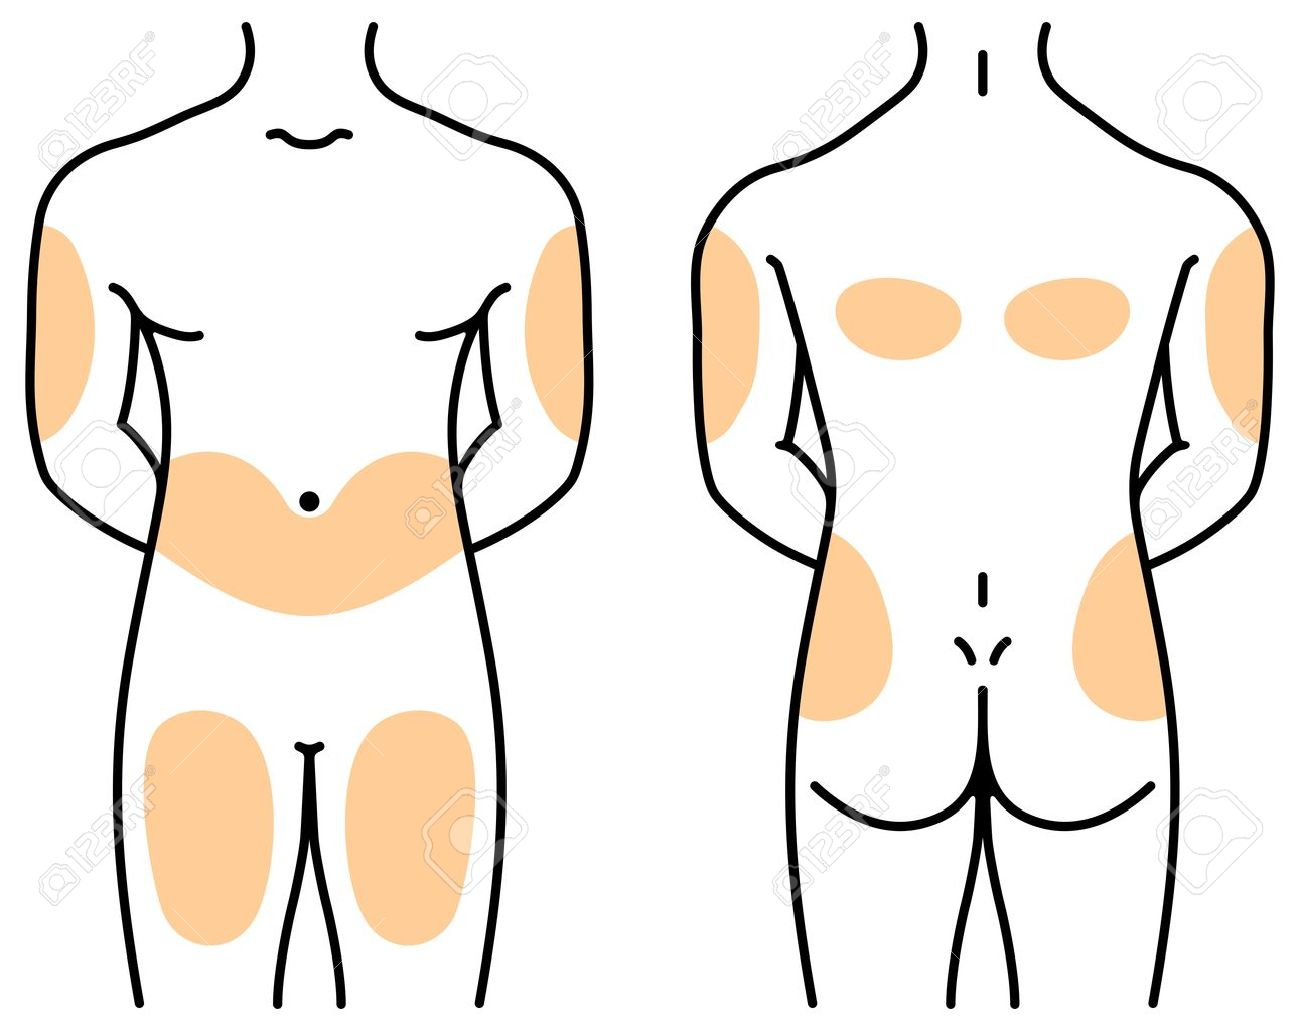 Insulin injection sites on human body royalty free cliparts insulin injection sites on human body stock vector 53599092 pooptronica Choice Image